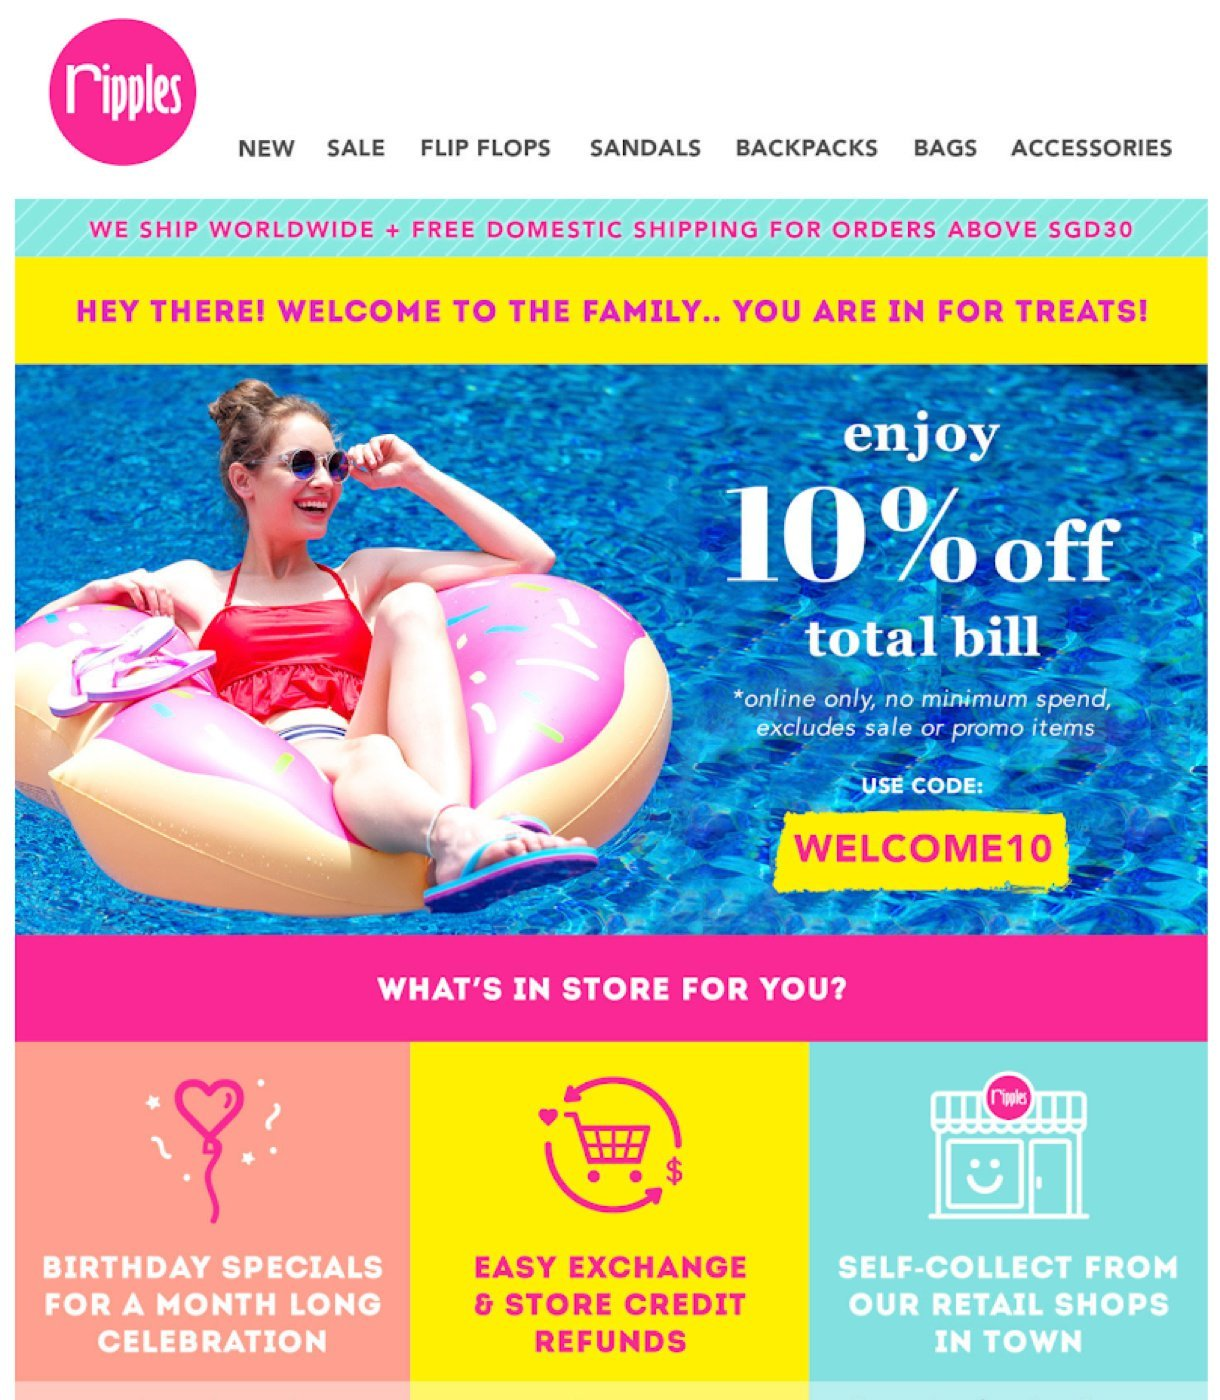 Ripples welcome email example girl floating in a pool